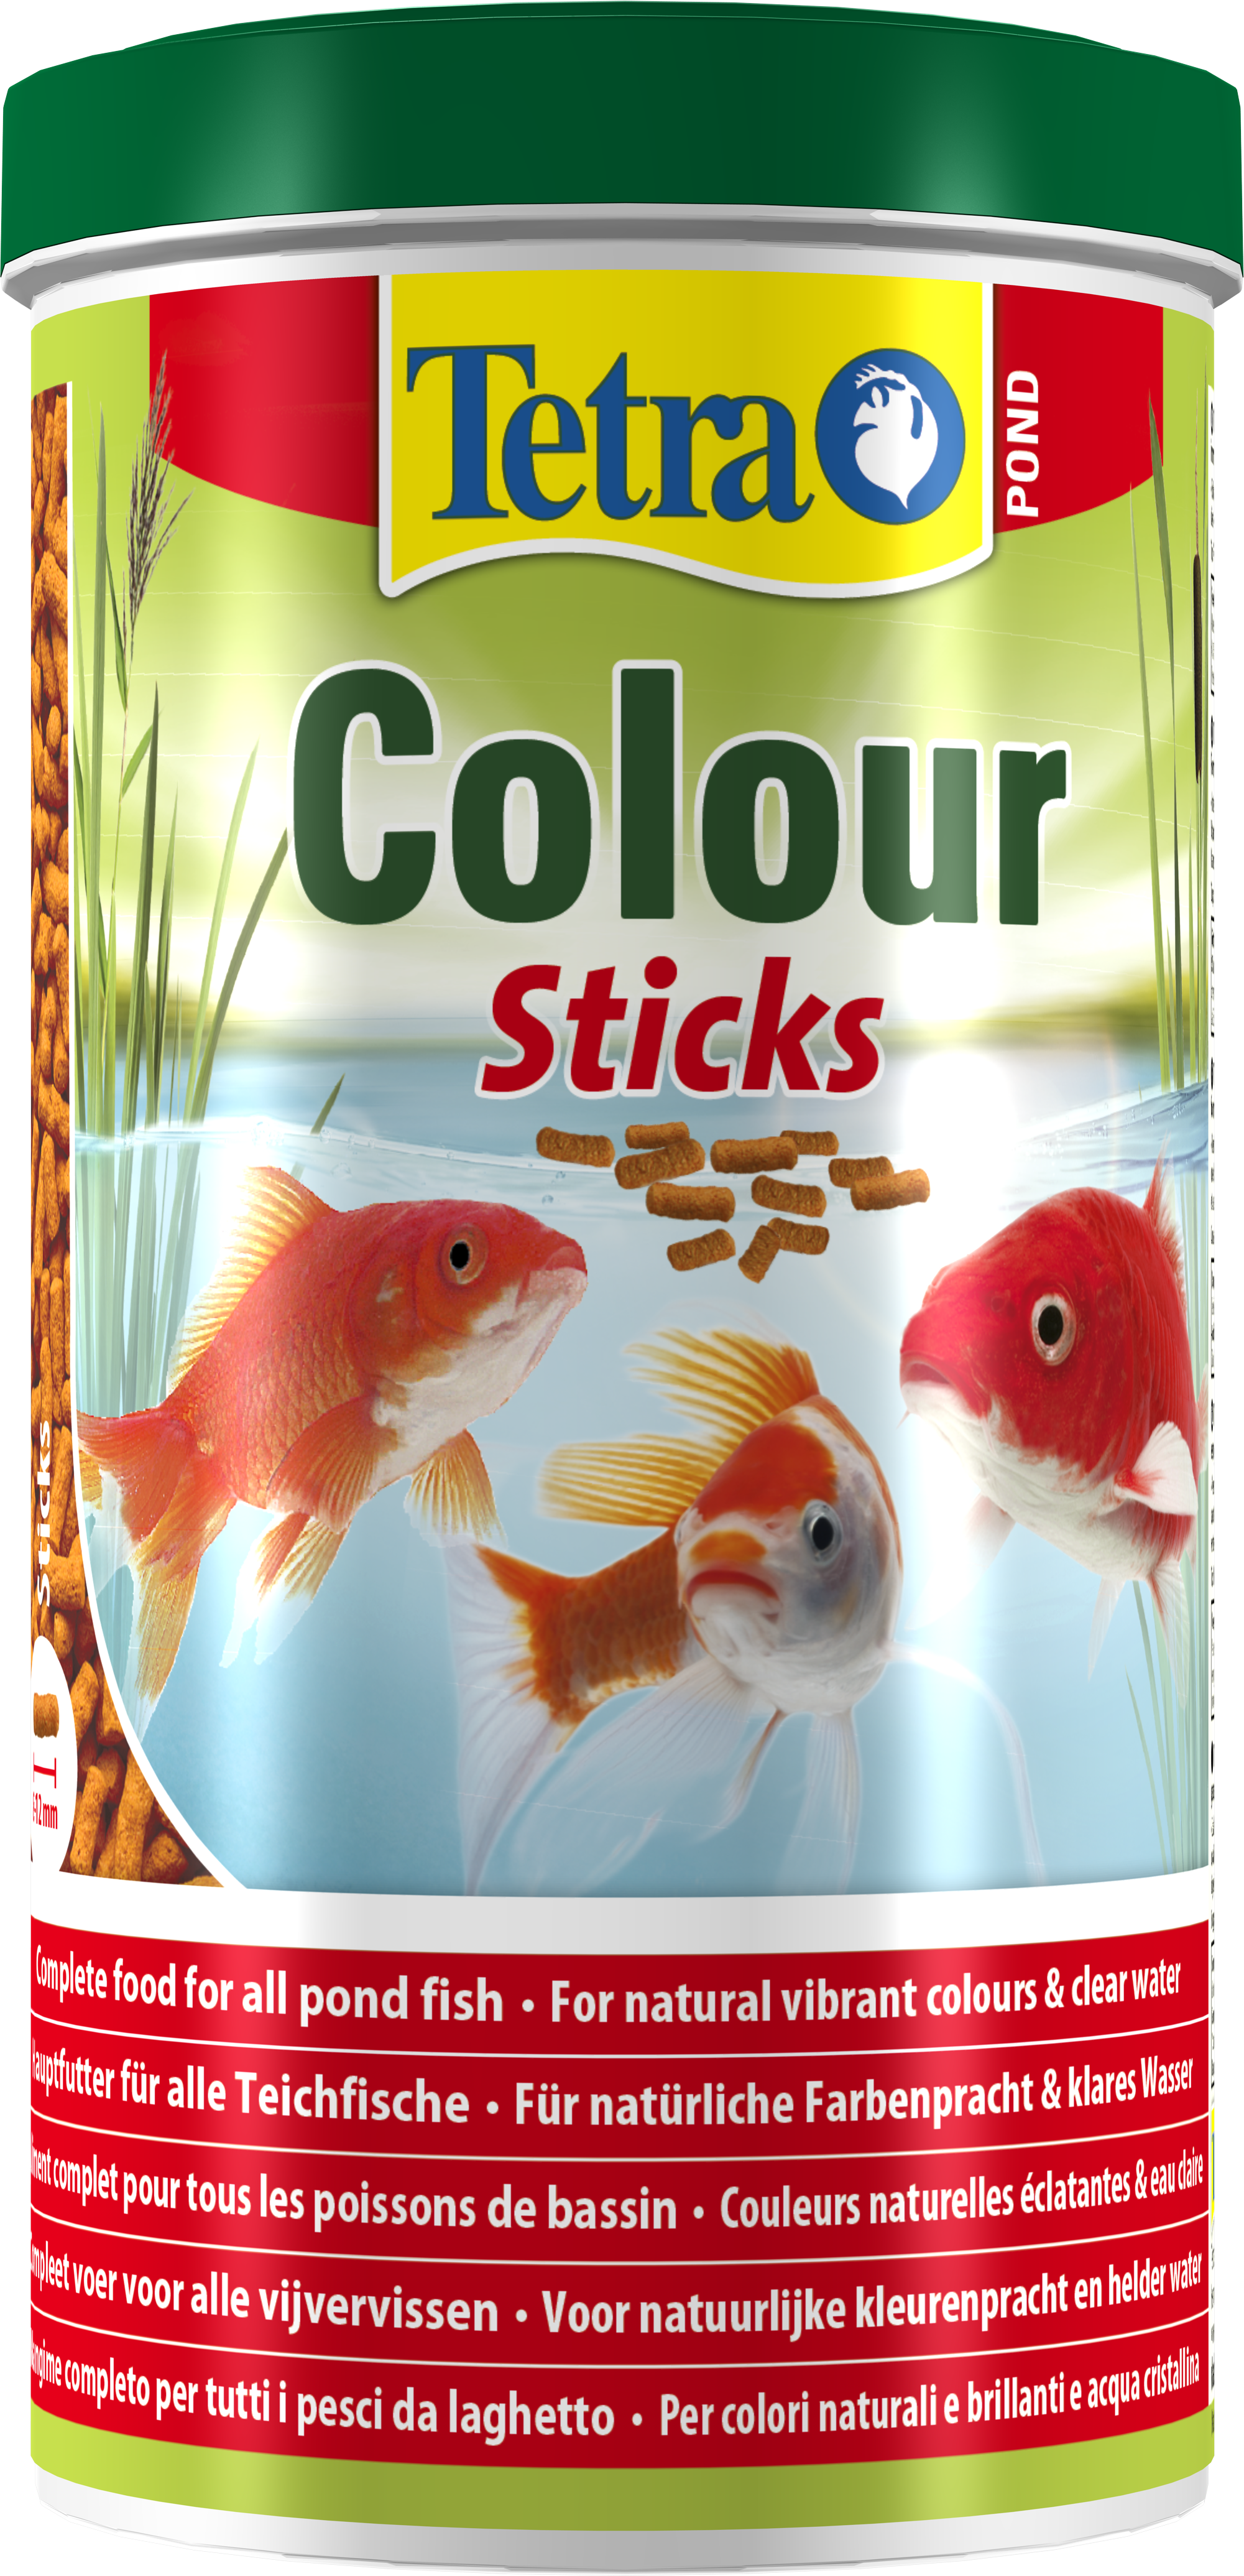 Tetra Pond Colour Sticks